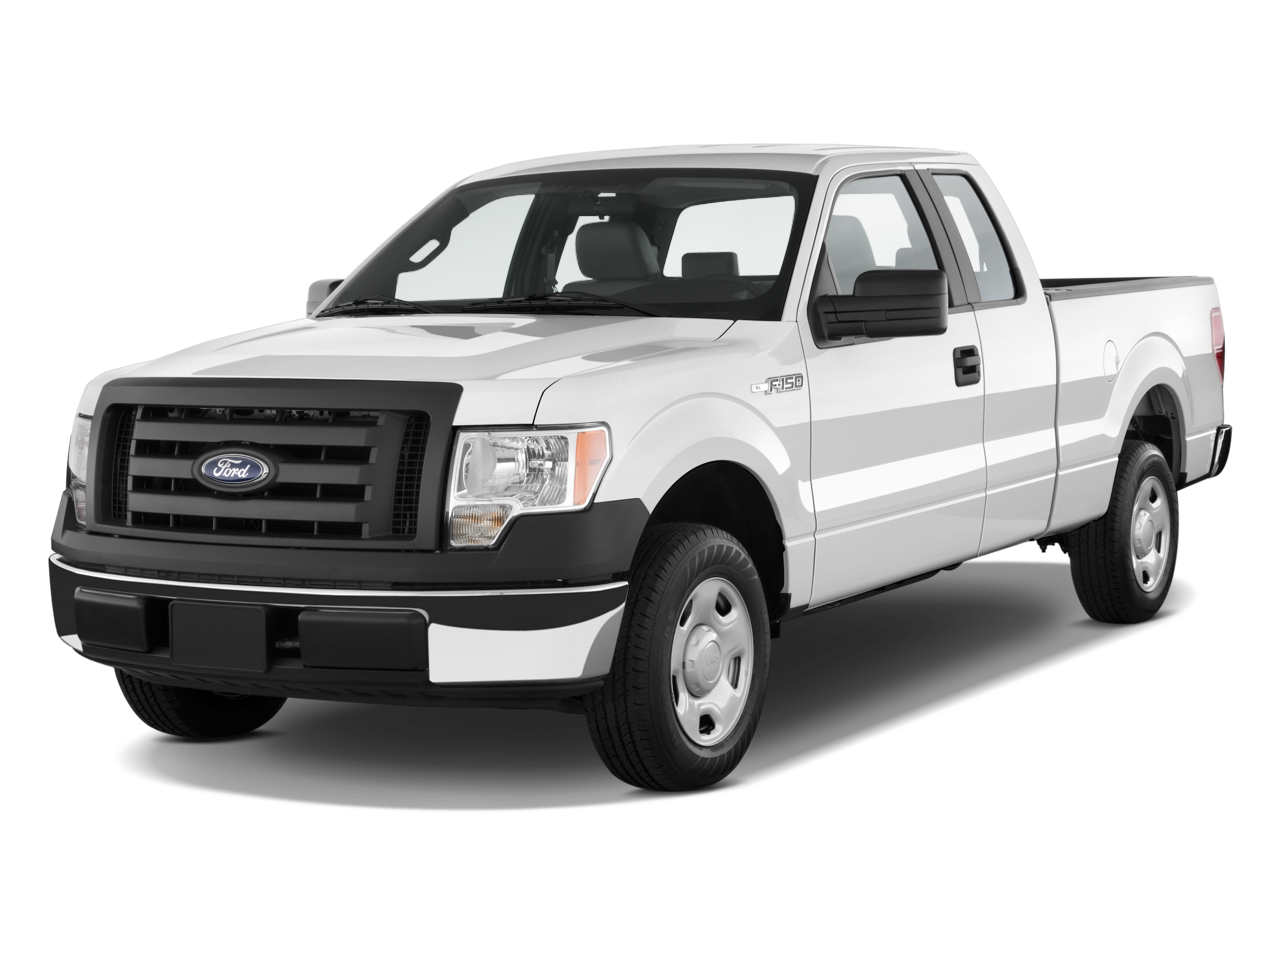 Ford Pickup Truck PNG Black And White - 155866